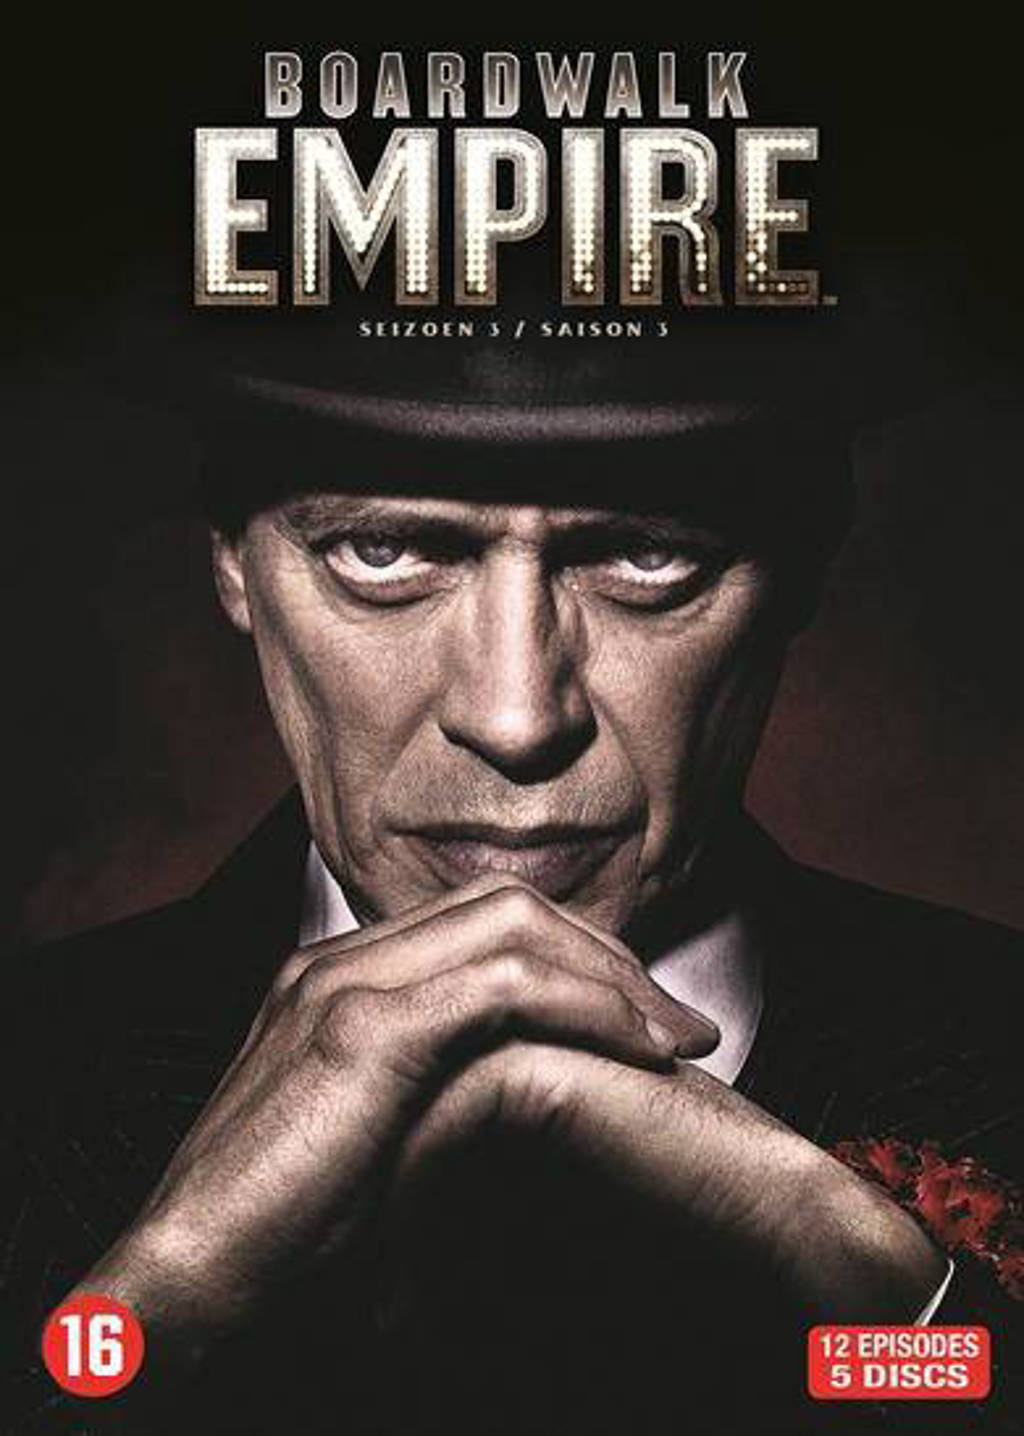 Boardwalk empire - Seizoen 3 (DVD)